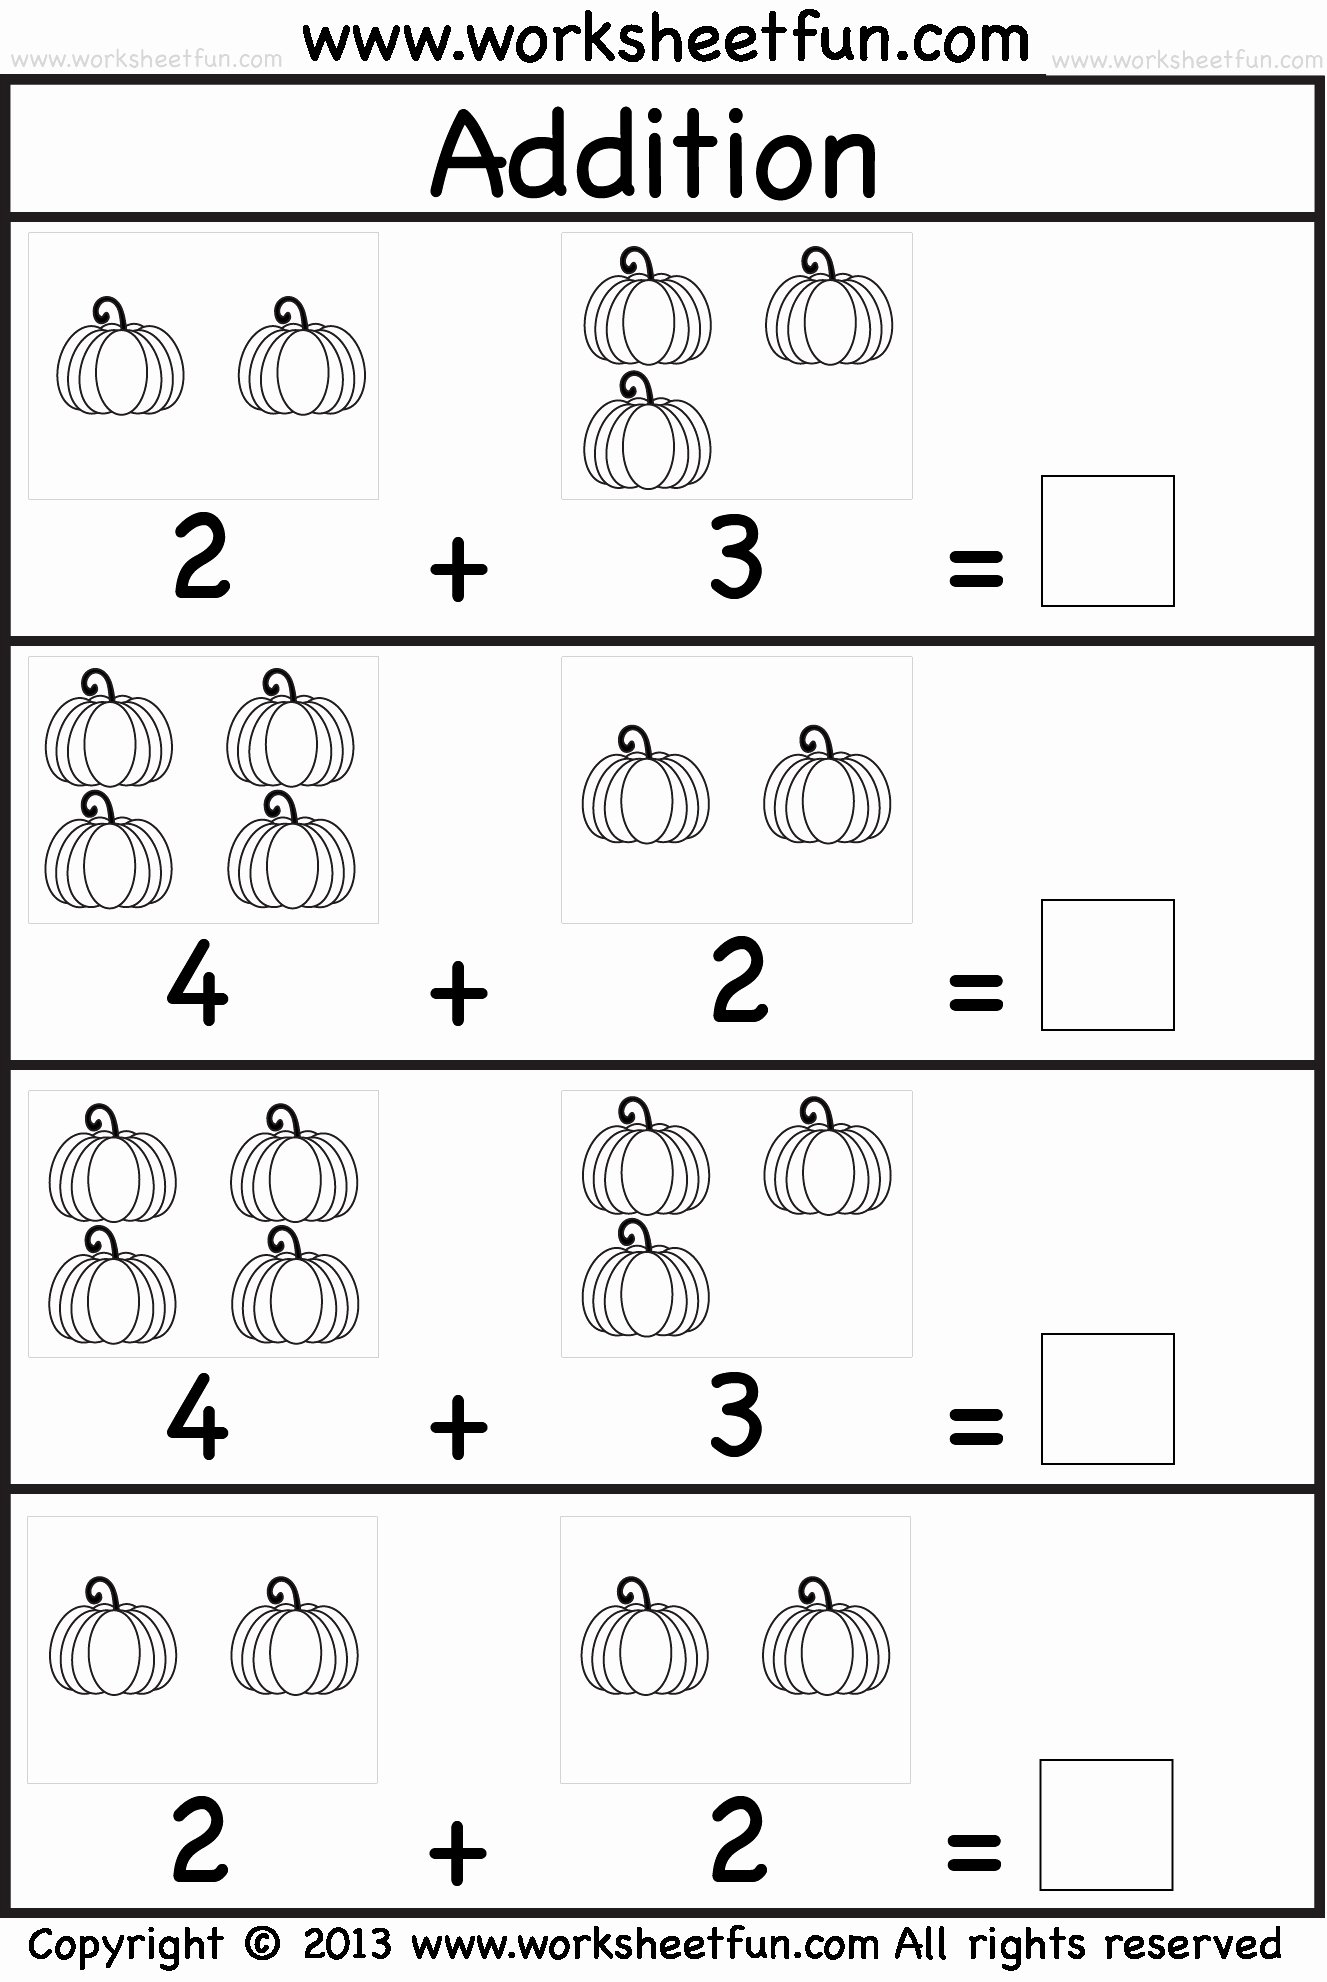 Printable Free Multiplication Worksheets Fresh Math Worksheet 51 Outstanding Math Worksheets Printable